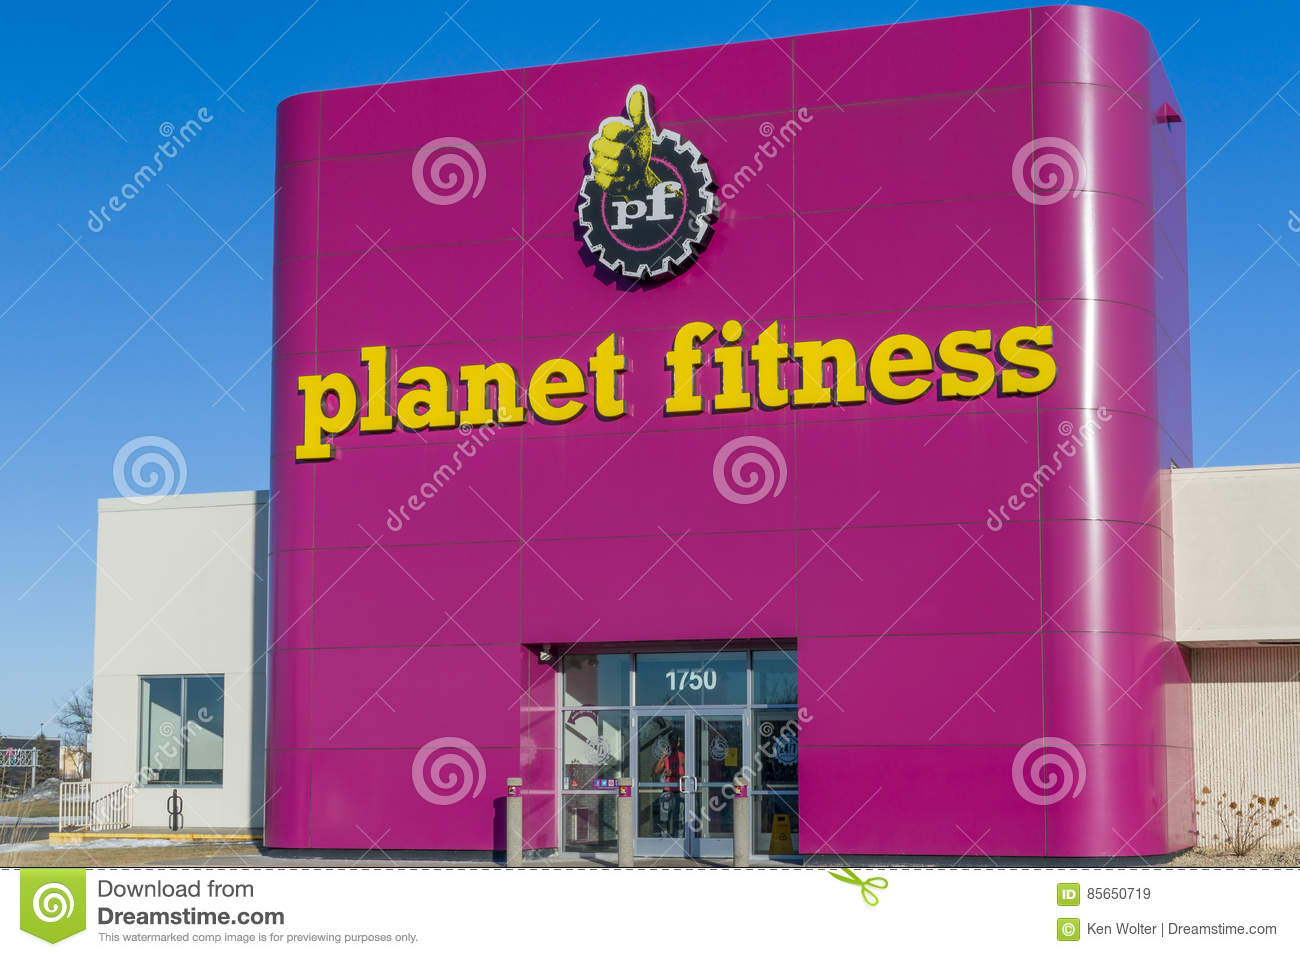 Fitness logo stock photos download 1303 images planet fitness exterior and logo roseville mnusa february 5 2017 buycottarizona Choice Image